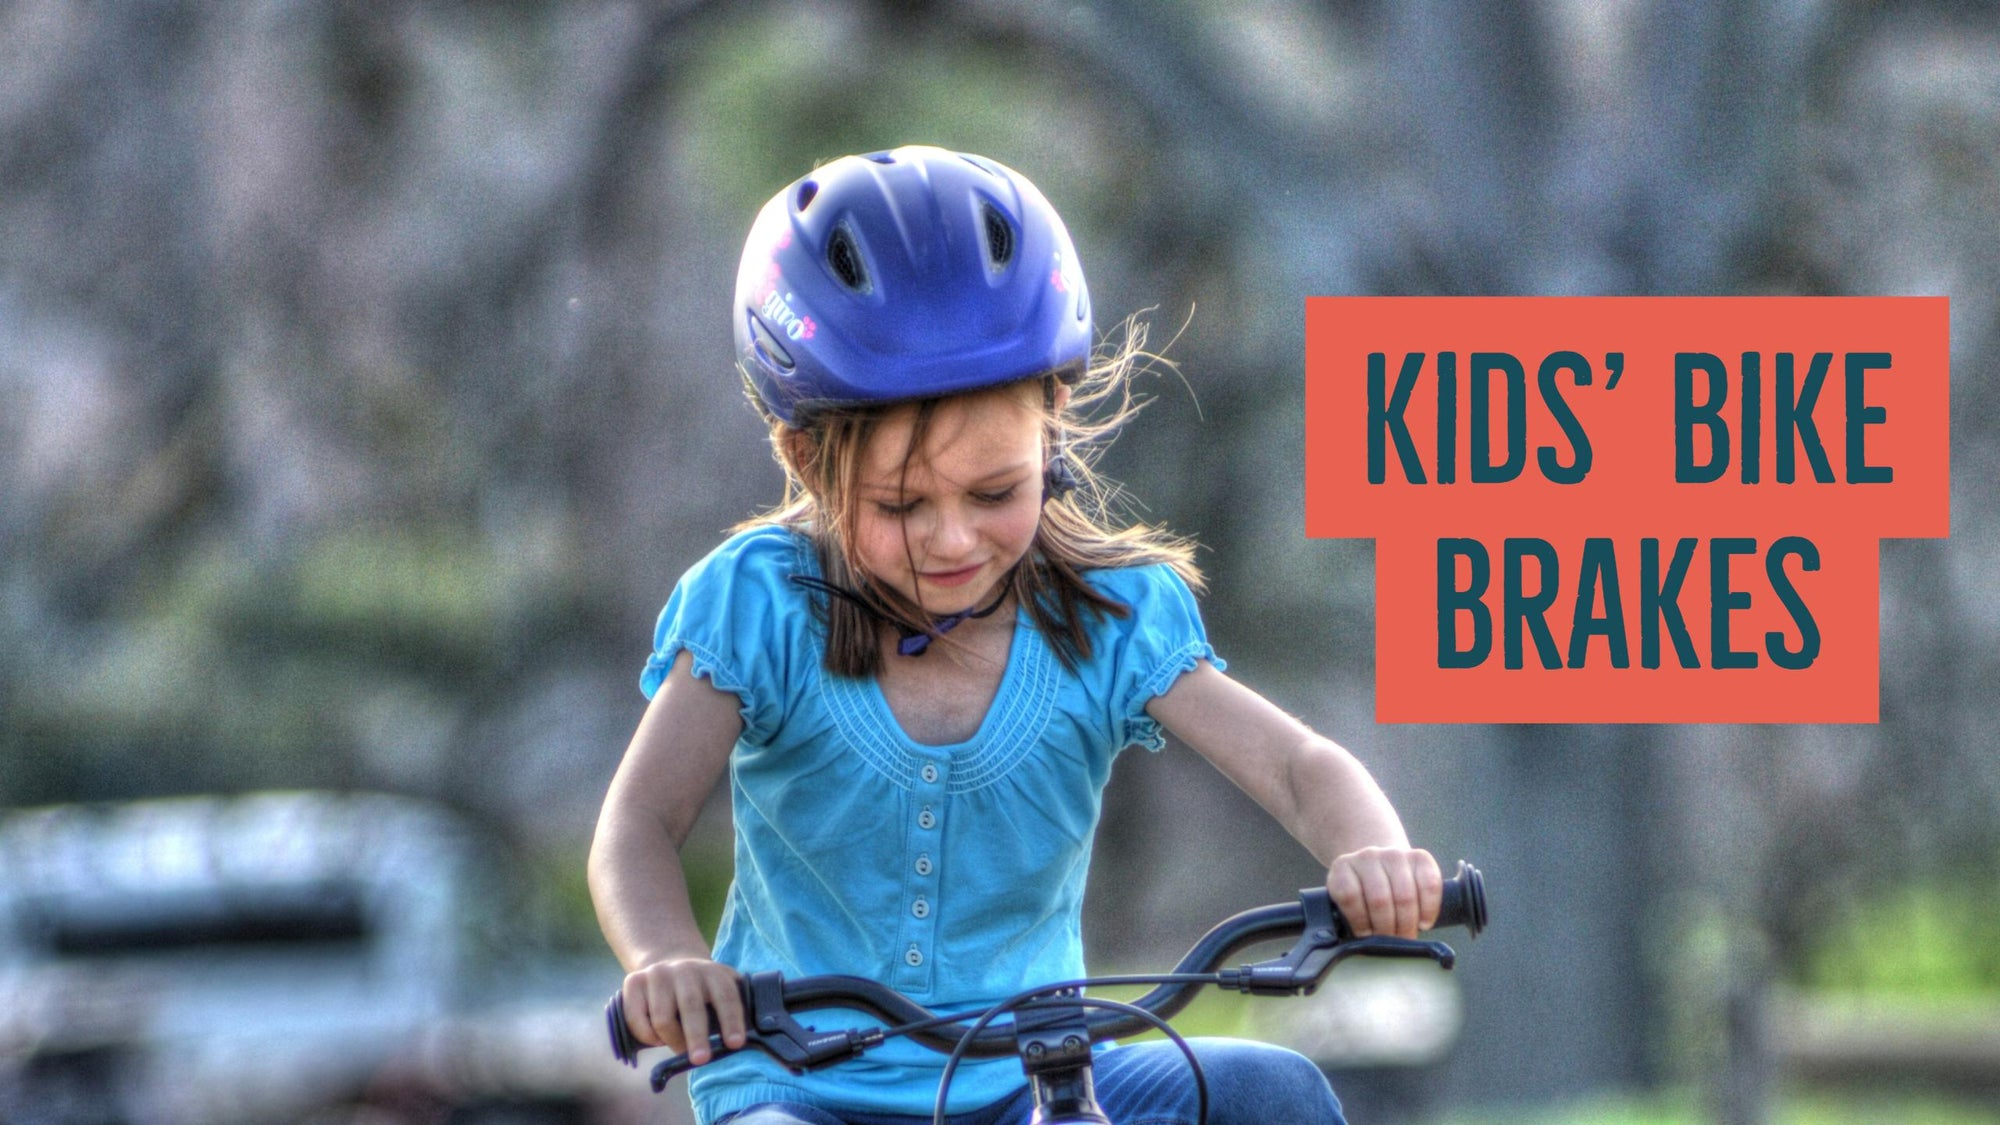 Kid's Bike Brakes:  9 Reasons a Kid's Bike Should Have Hand Brakes